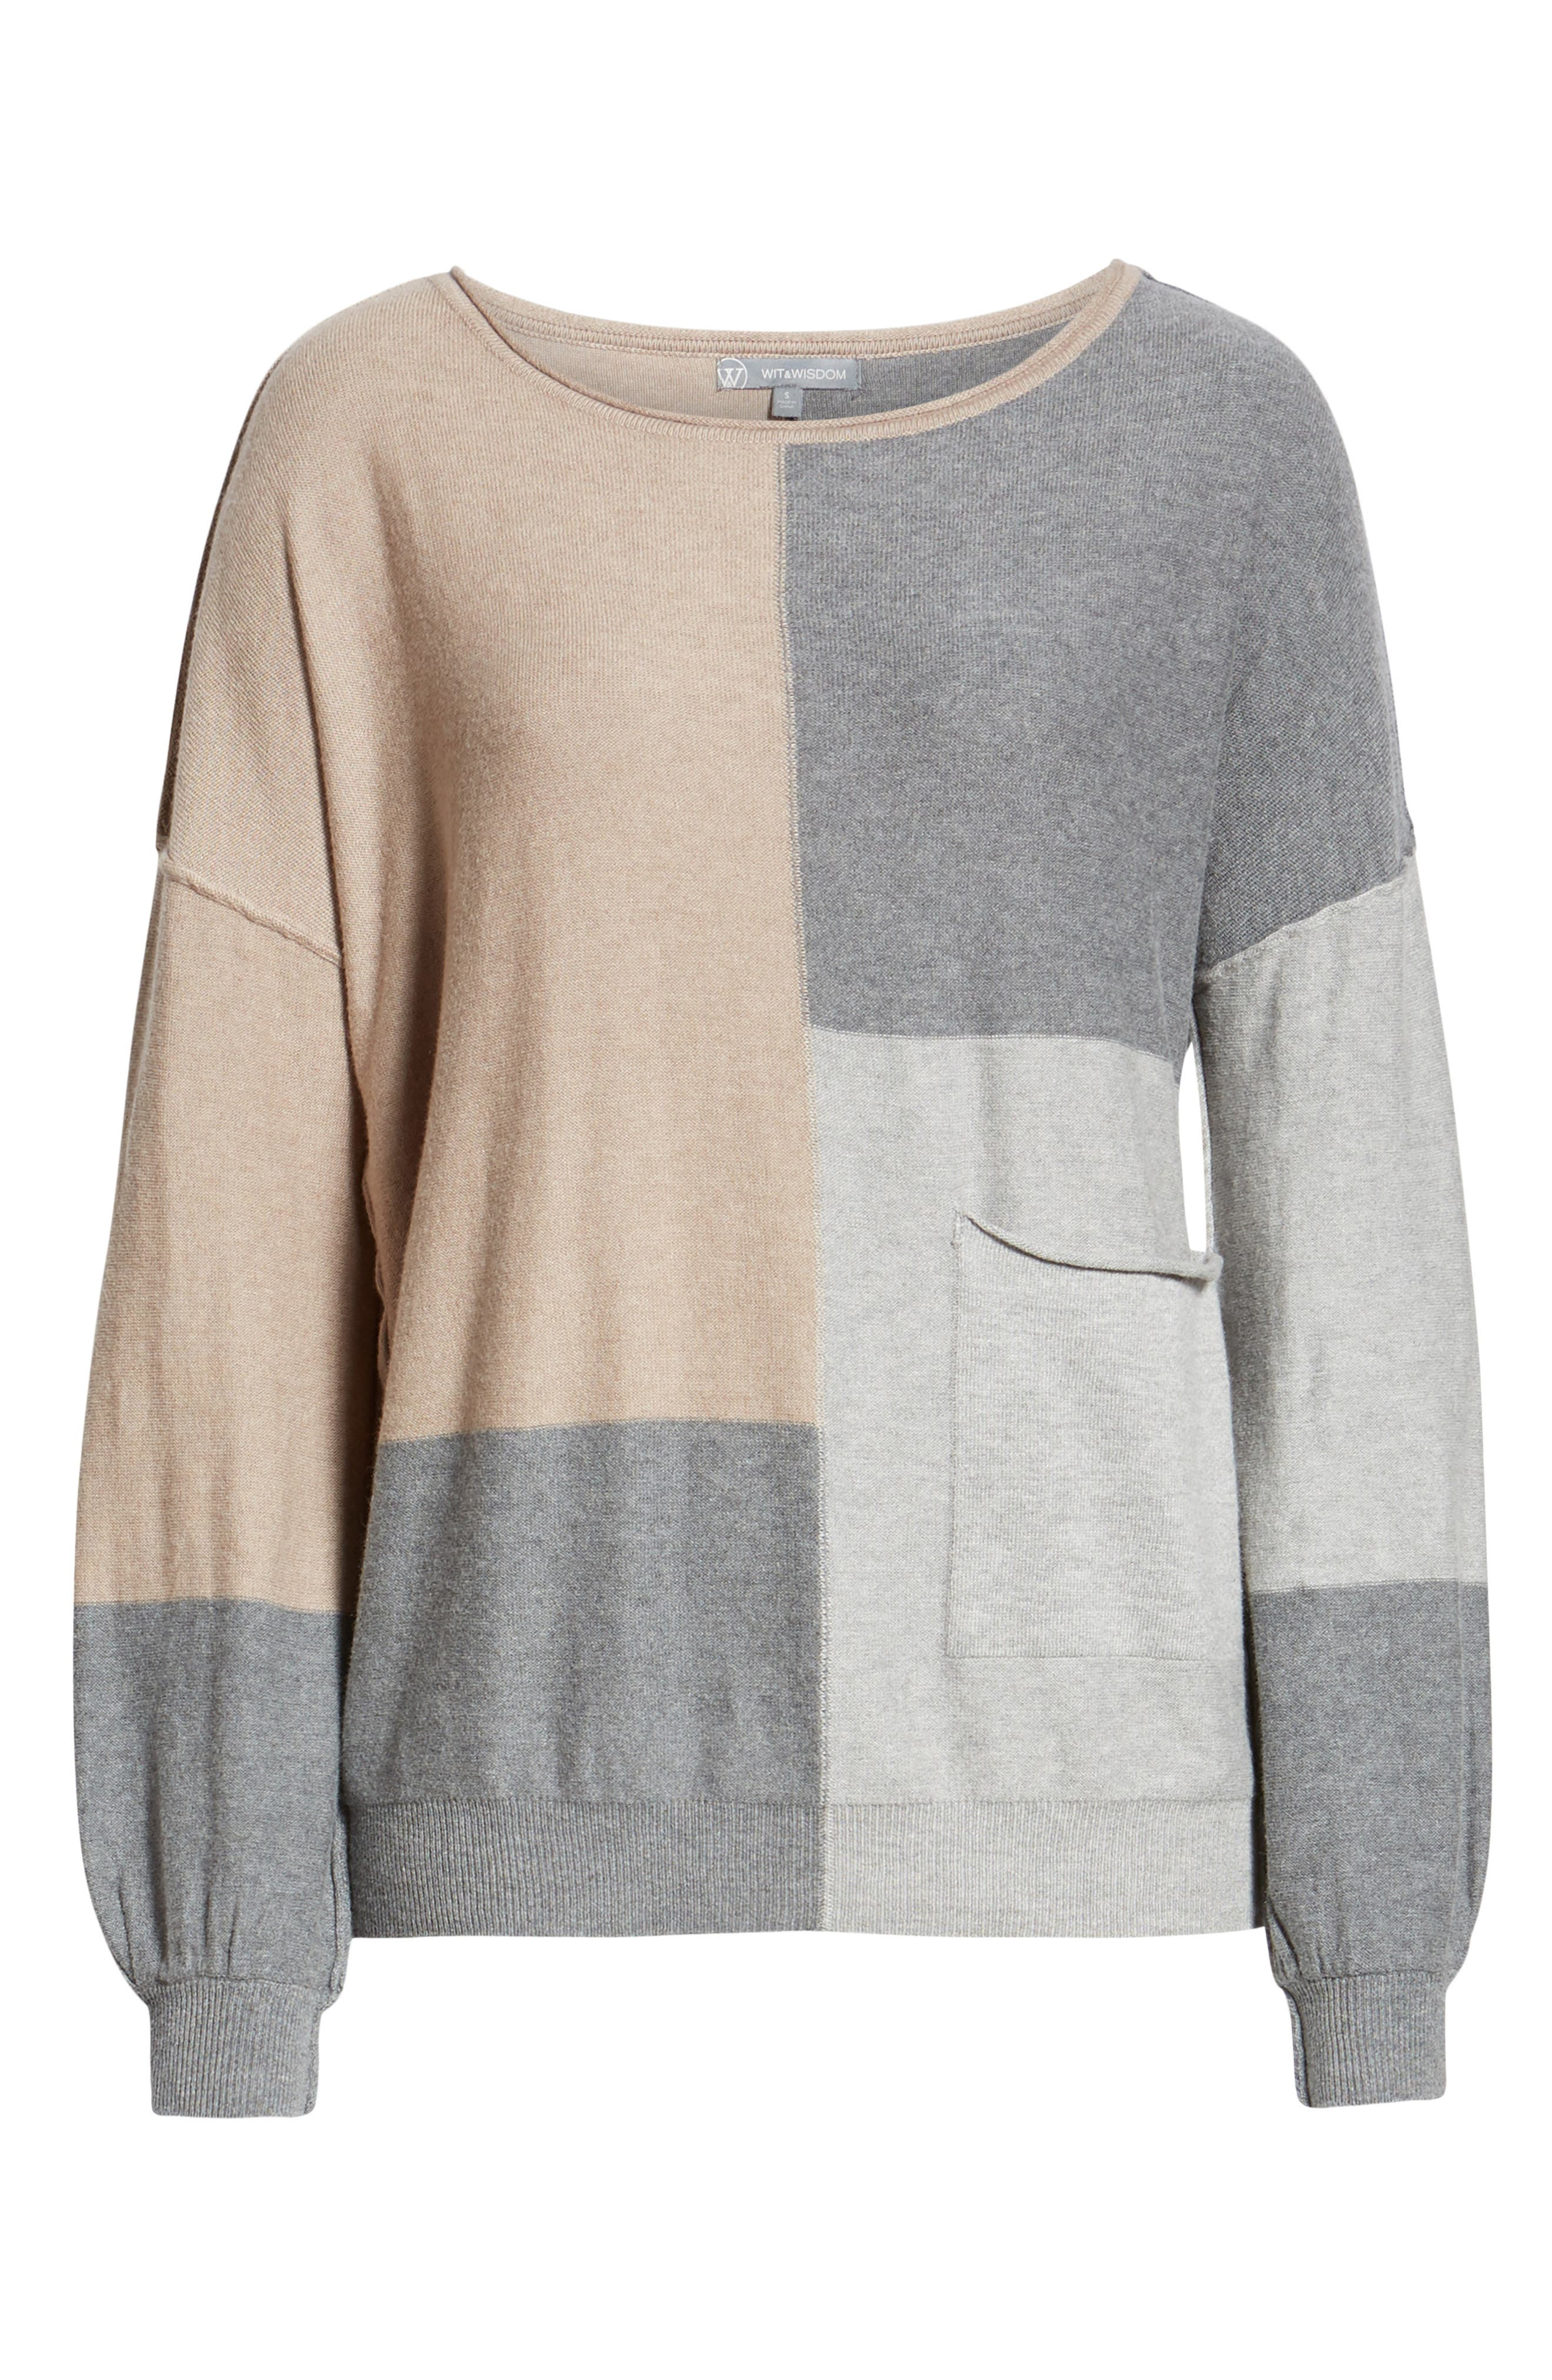 Colorblock Sweater,                             Alternate thumbnail 6, color,                             TAUPE/ HEATHER GREY